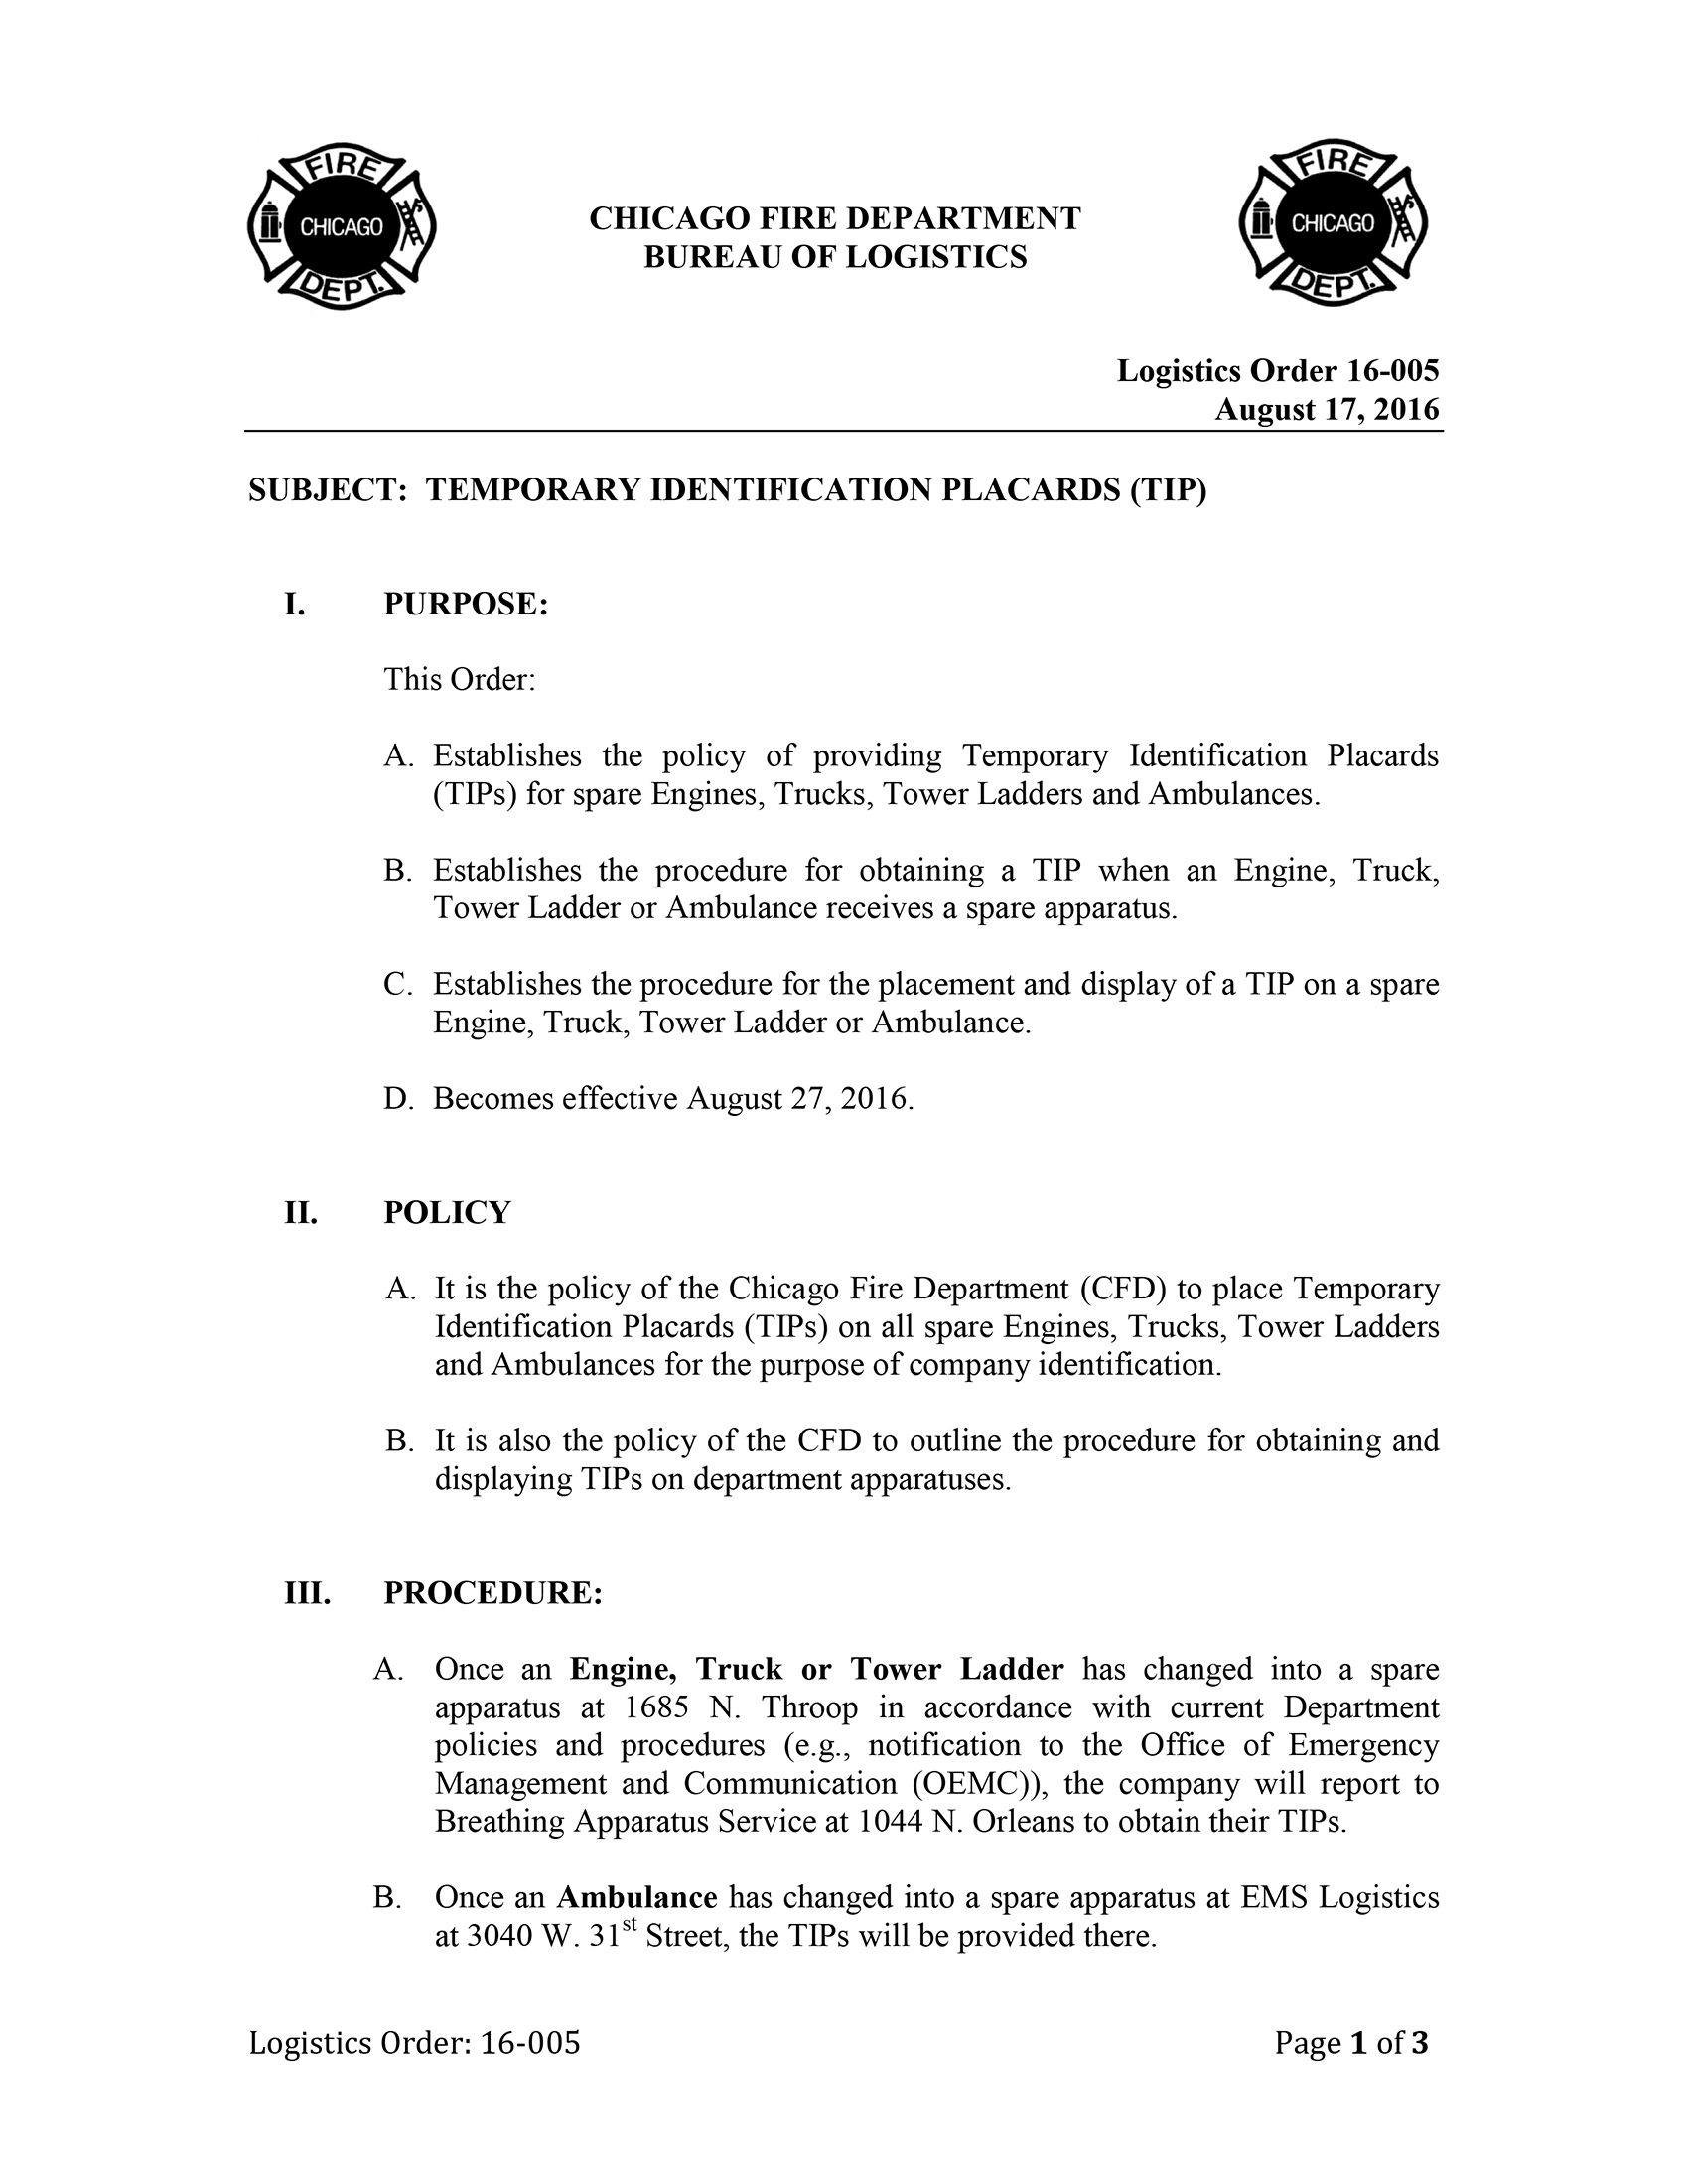 CFD Logistics Order 16-005 - Temporary Identification Placards